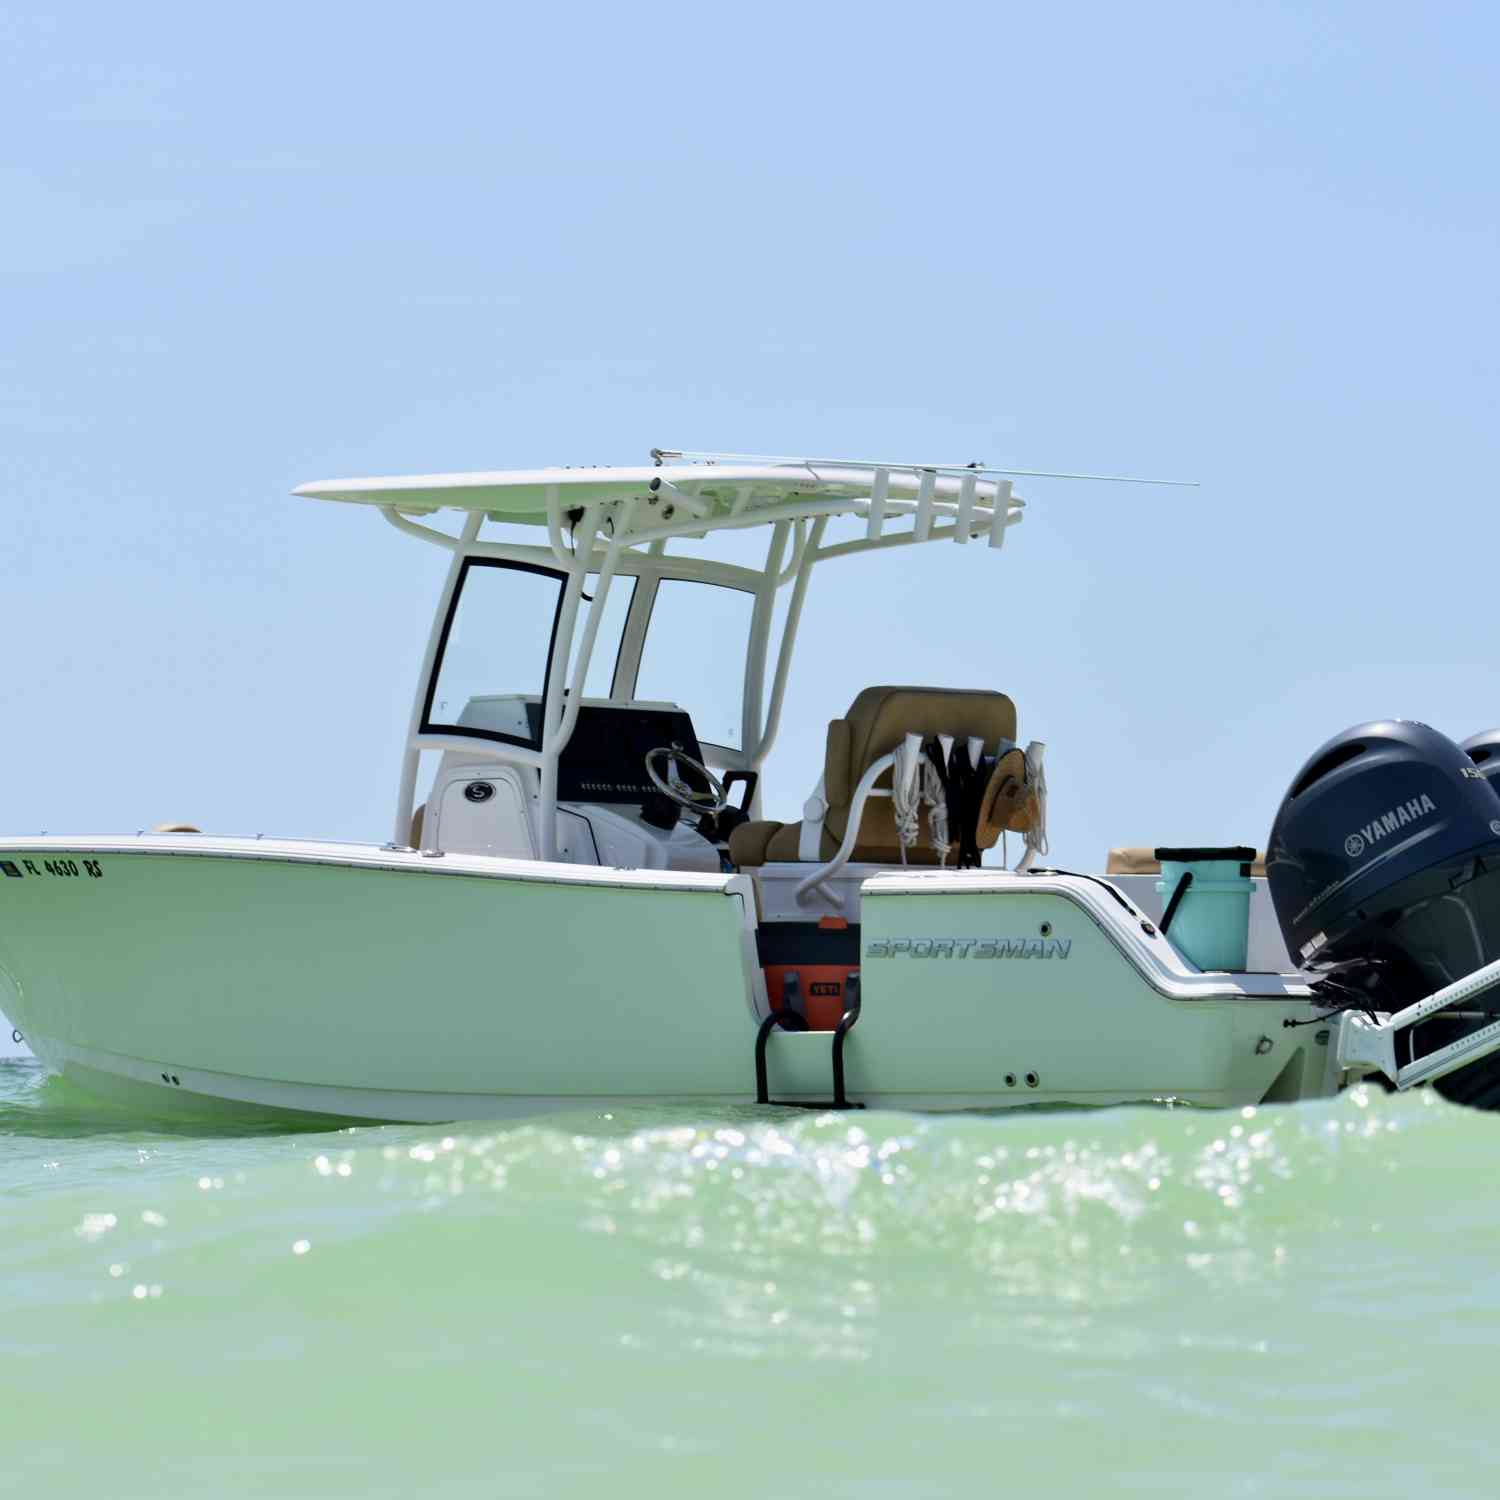 Title: Beachin - On board their Sportsman Heritage 251 Center Console - Location: Keewayden, FL. Participating in the Photo Contest #SportsmanJune2020